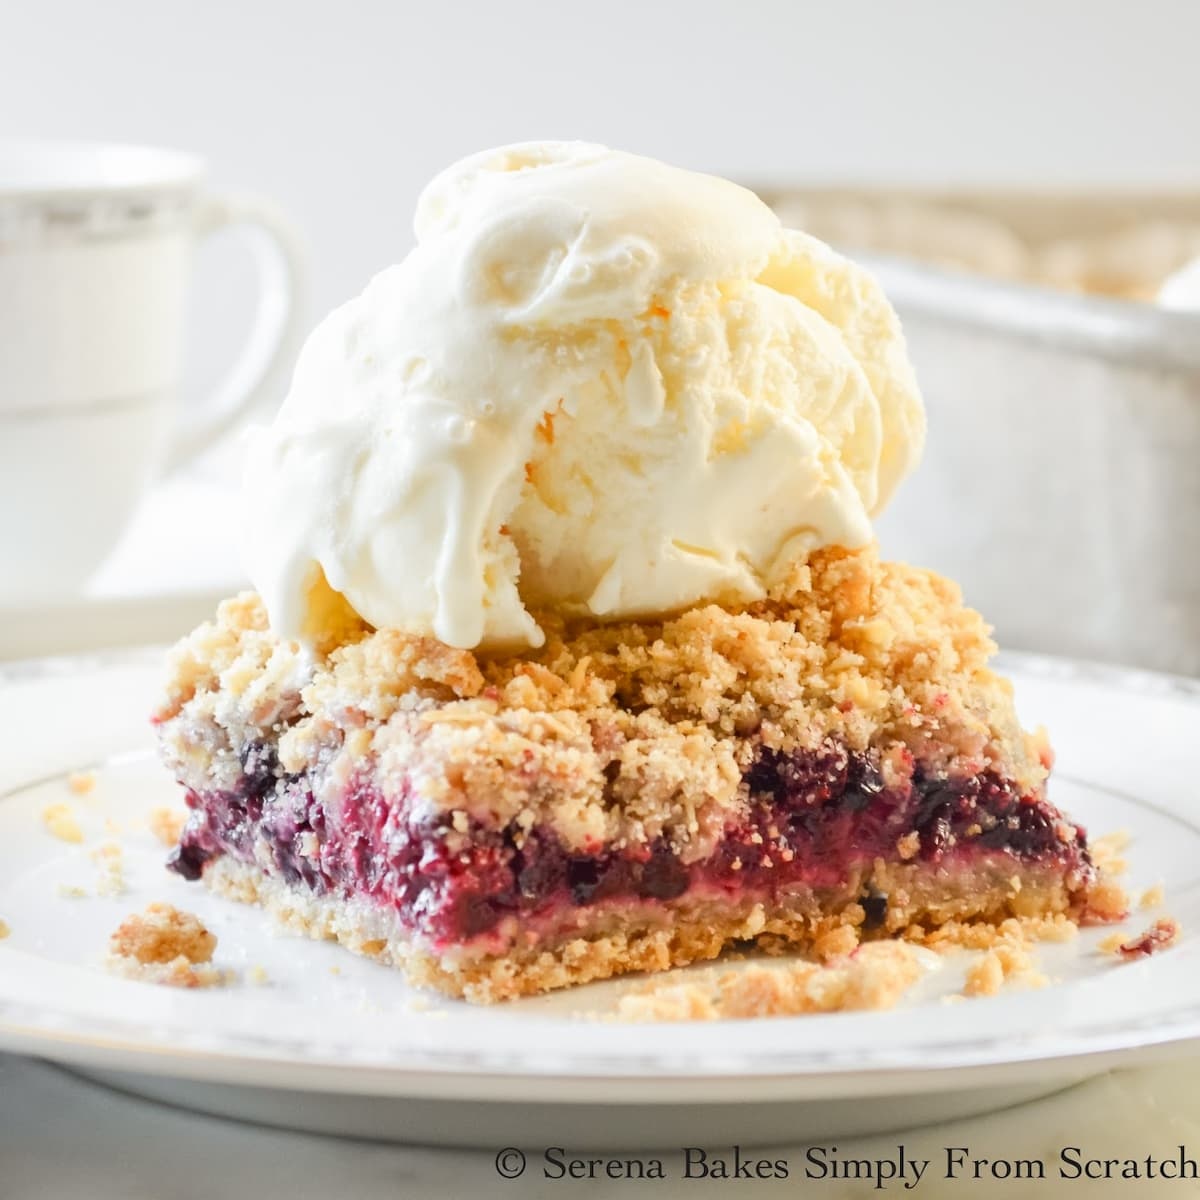 Blackberry Crumb Bars with a scoop of vanilla ice cream from Serena Bakes Simply From Scratch.